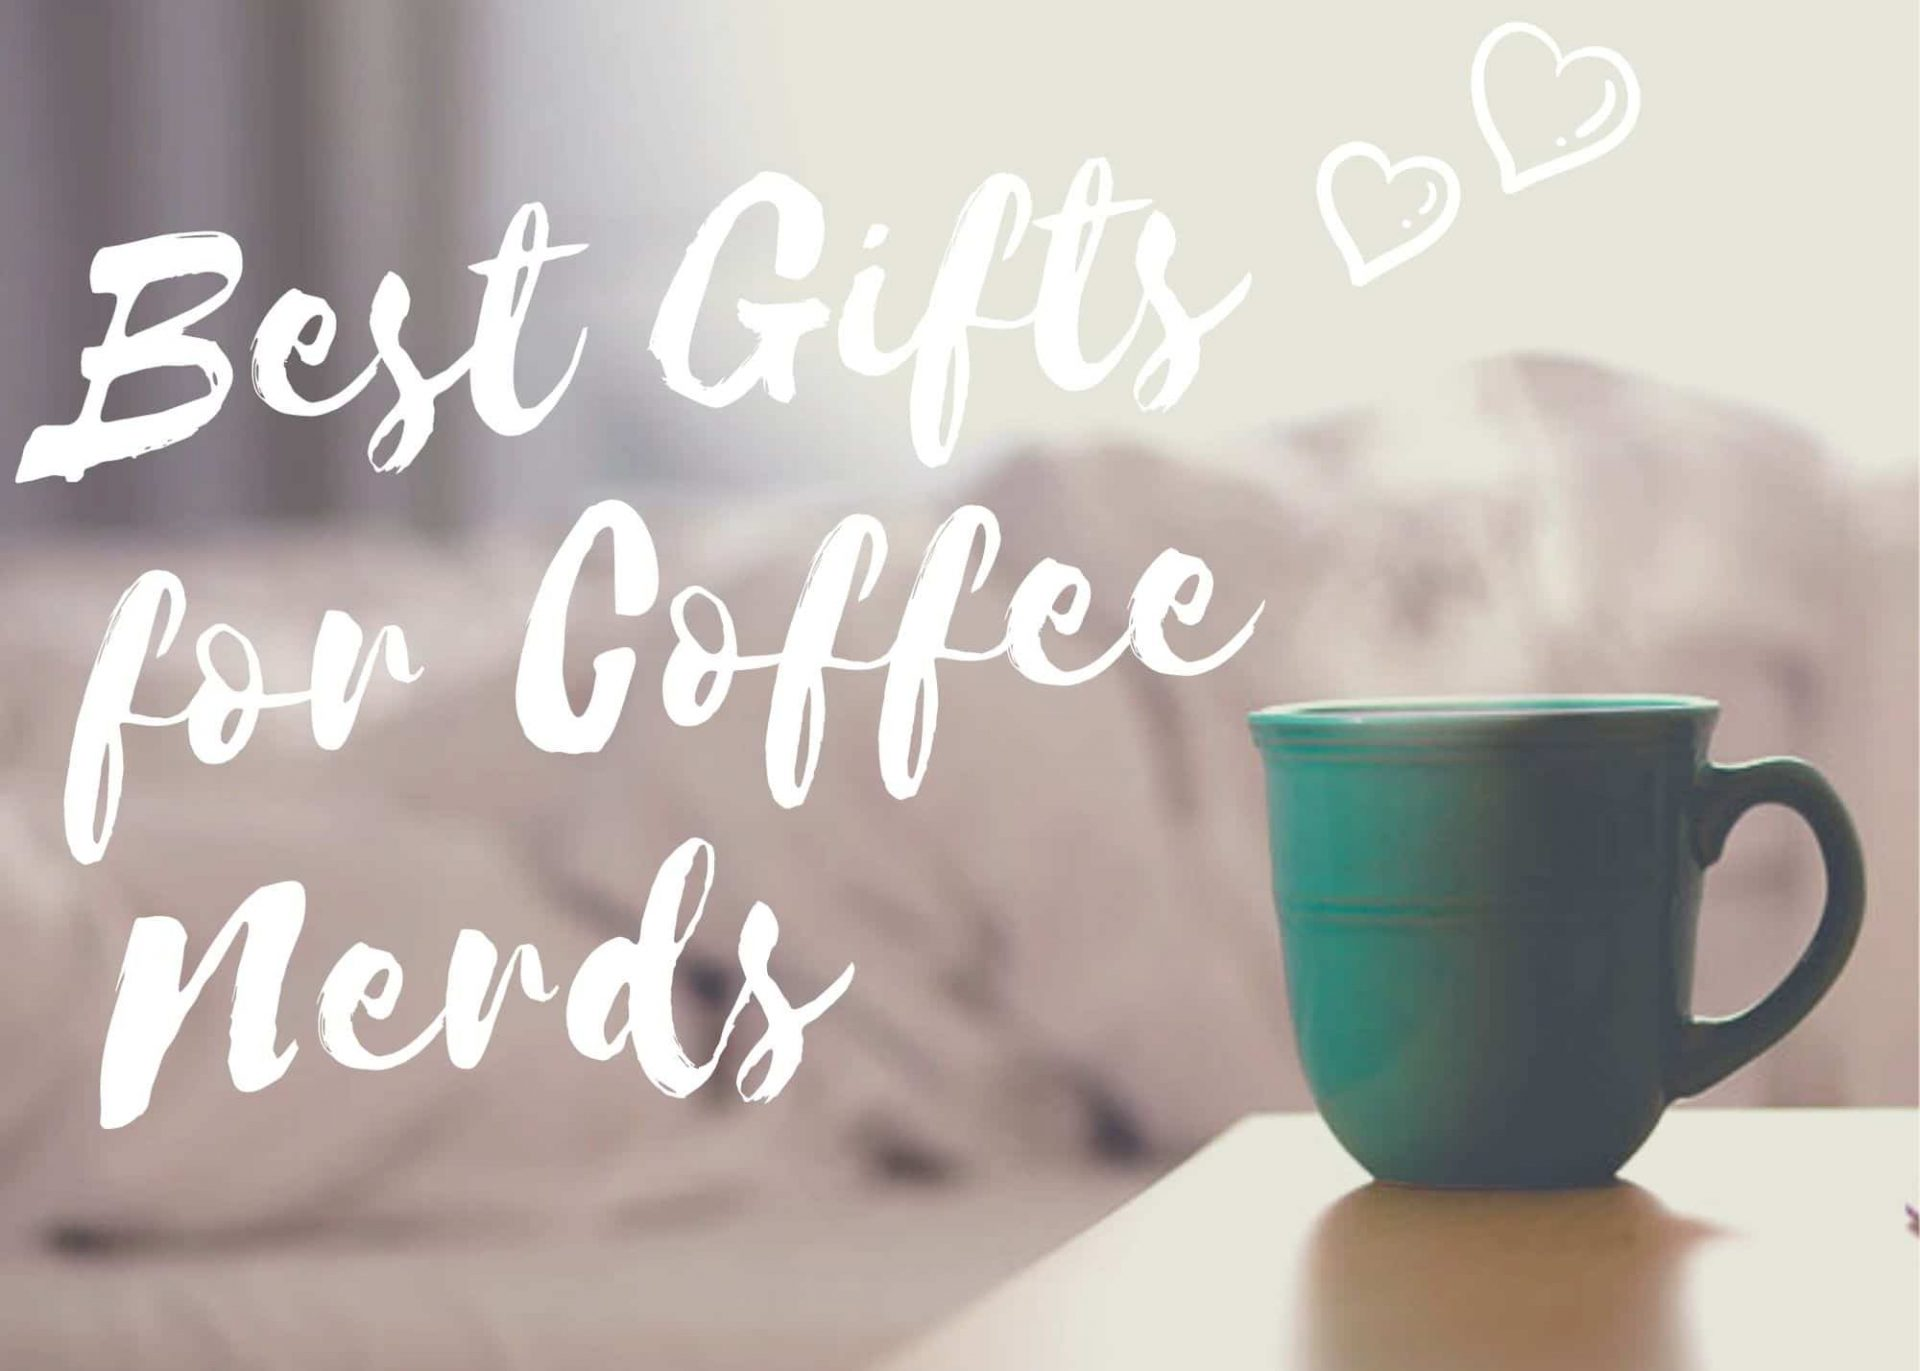 Gifts-for-Coffee-Nerds